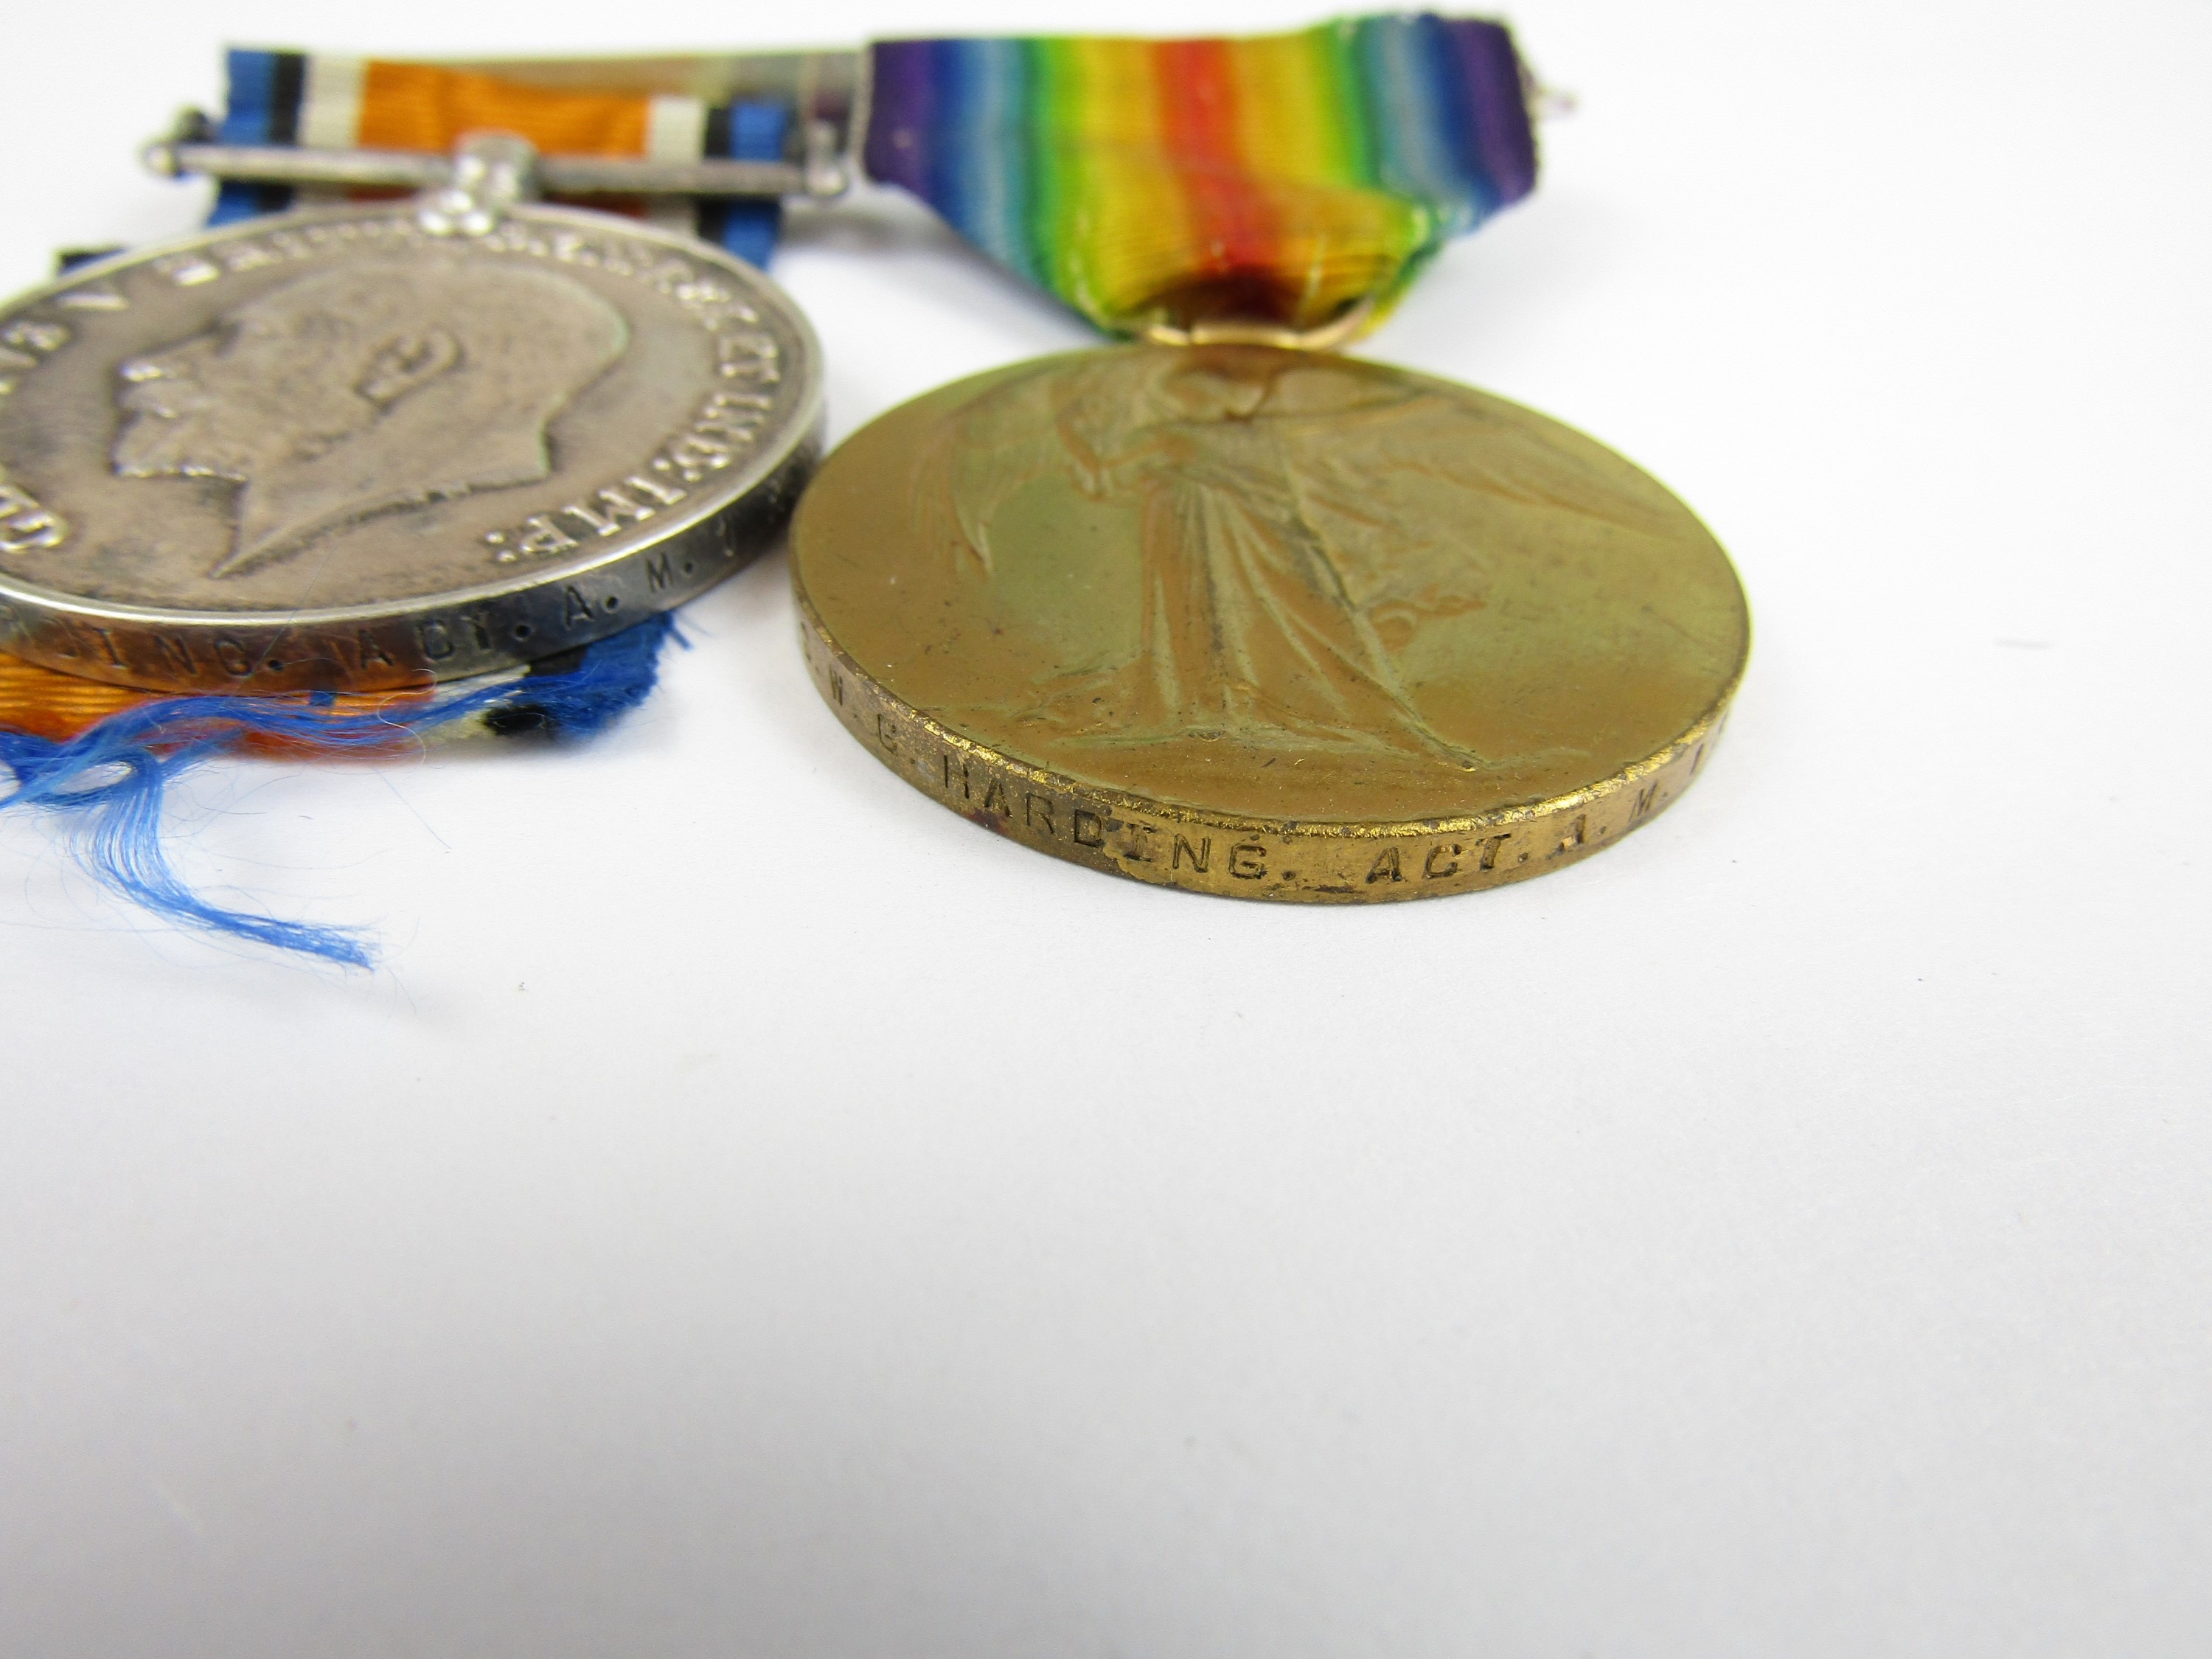 Lot 15 - A British War and Victory Medal pair to F6726 G W G Harding, Act AM I, RNAS